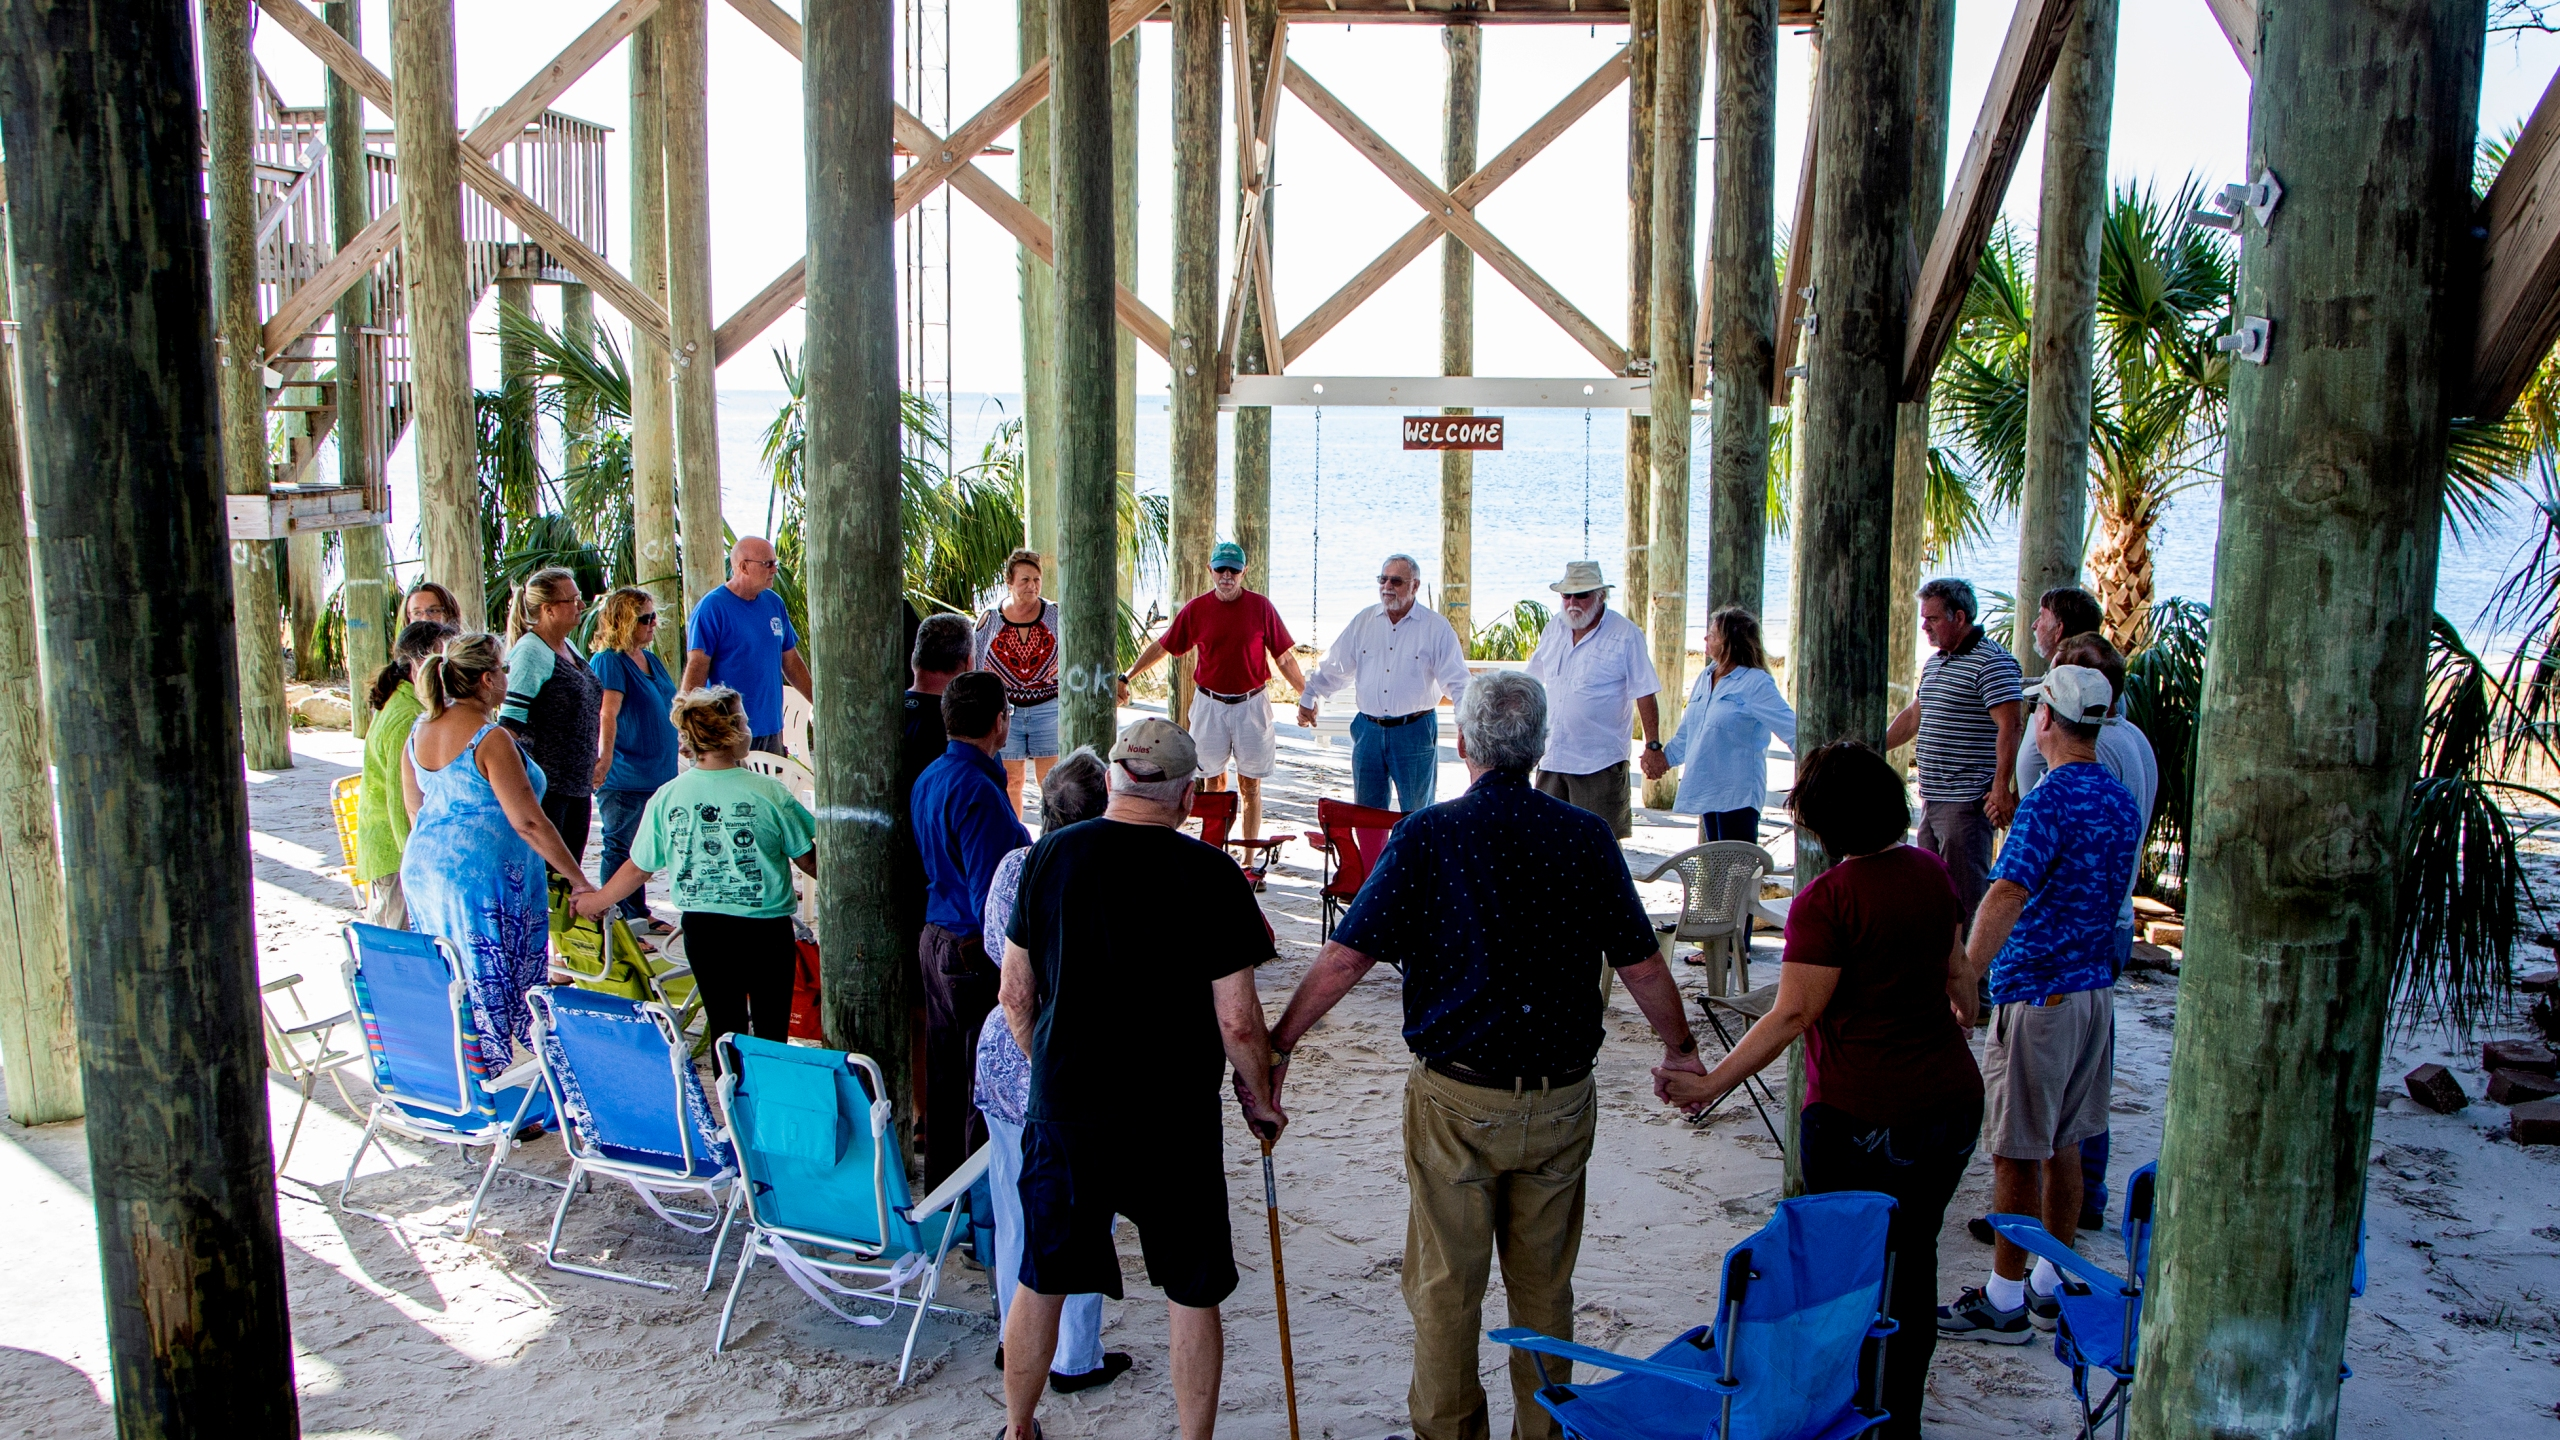 Pastor Gary Pritchett leads the prayer during church service under the Seafarers Chapel at Shell Point on October 14, 2018 in Crawfordville, Florida. According to reports, at least 17 people have died since Hurricane Michael made landfall along the Florida Panhandle Wednesday as a Category 4 storm. (Credit: Mark Wallheiser/Getty Images)